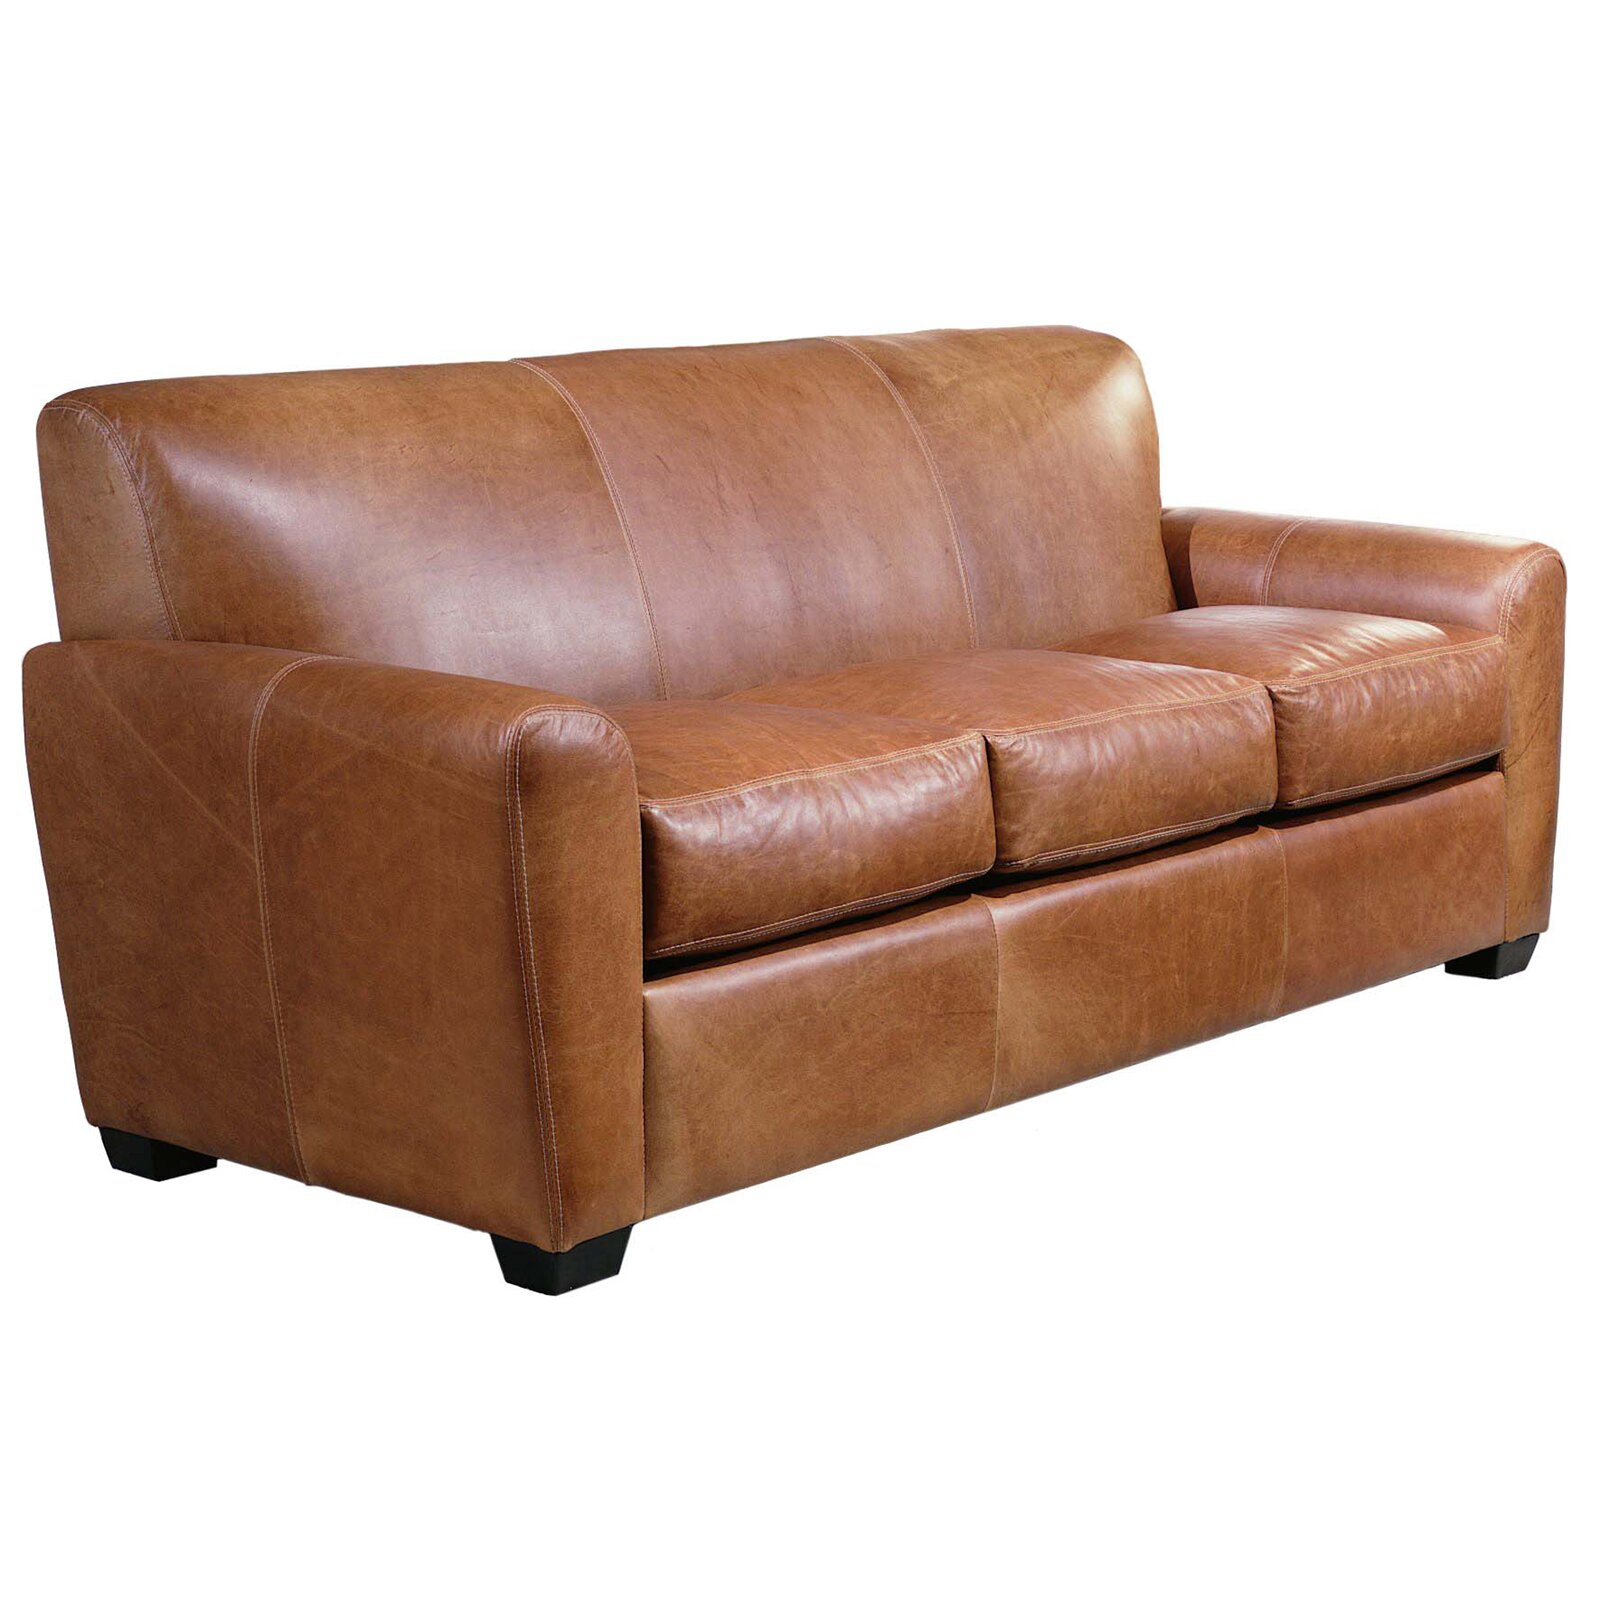 Warefair Com: Omnia Leather Jackson Leather Sleeper Sofa